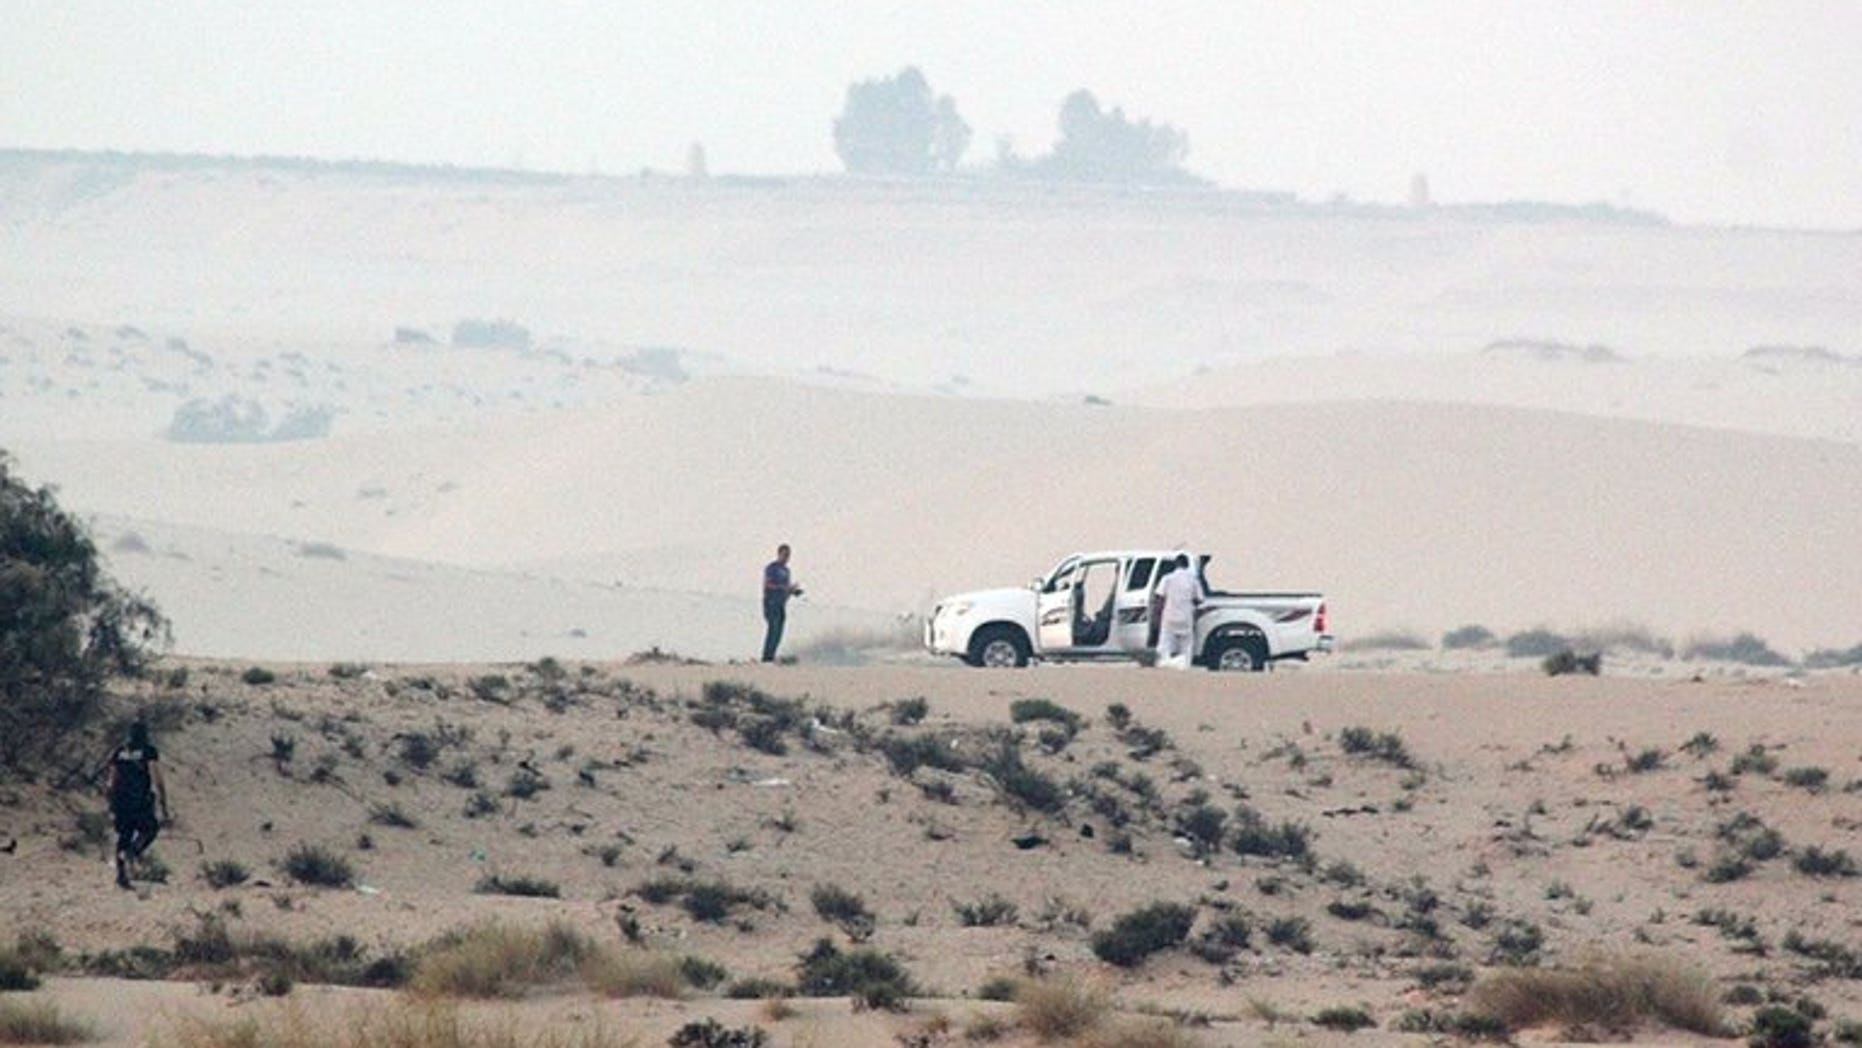 Egyptian security forces take position during an operation in the northern Sinai peninsula on August 8, 2012. Gunmen on Wednesday opened fire on the car of a senior military commander in Egypt's restive Sinai peninsula, the army spokesman said, a day after two people died in an attack by militants on a security checkpoint.